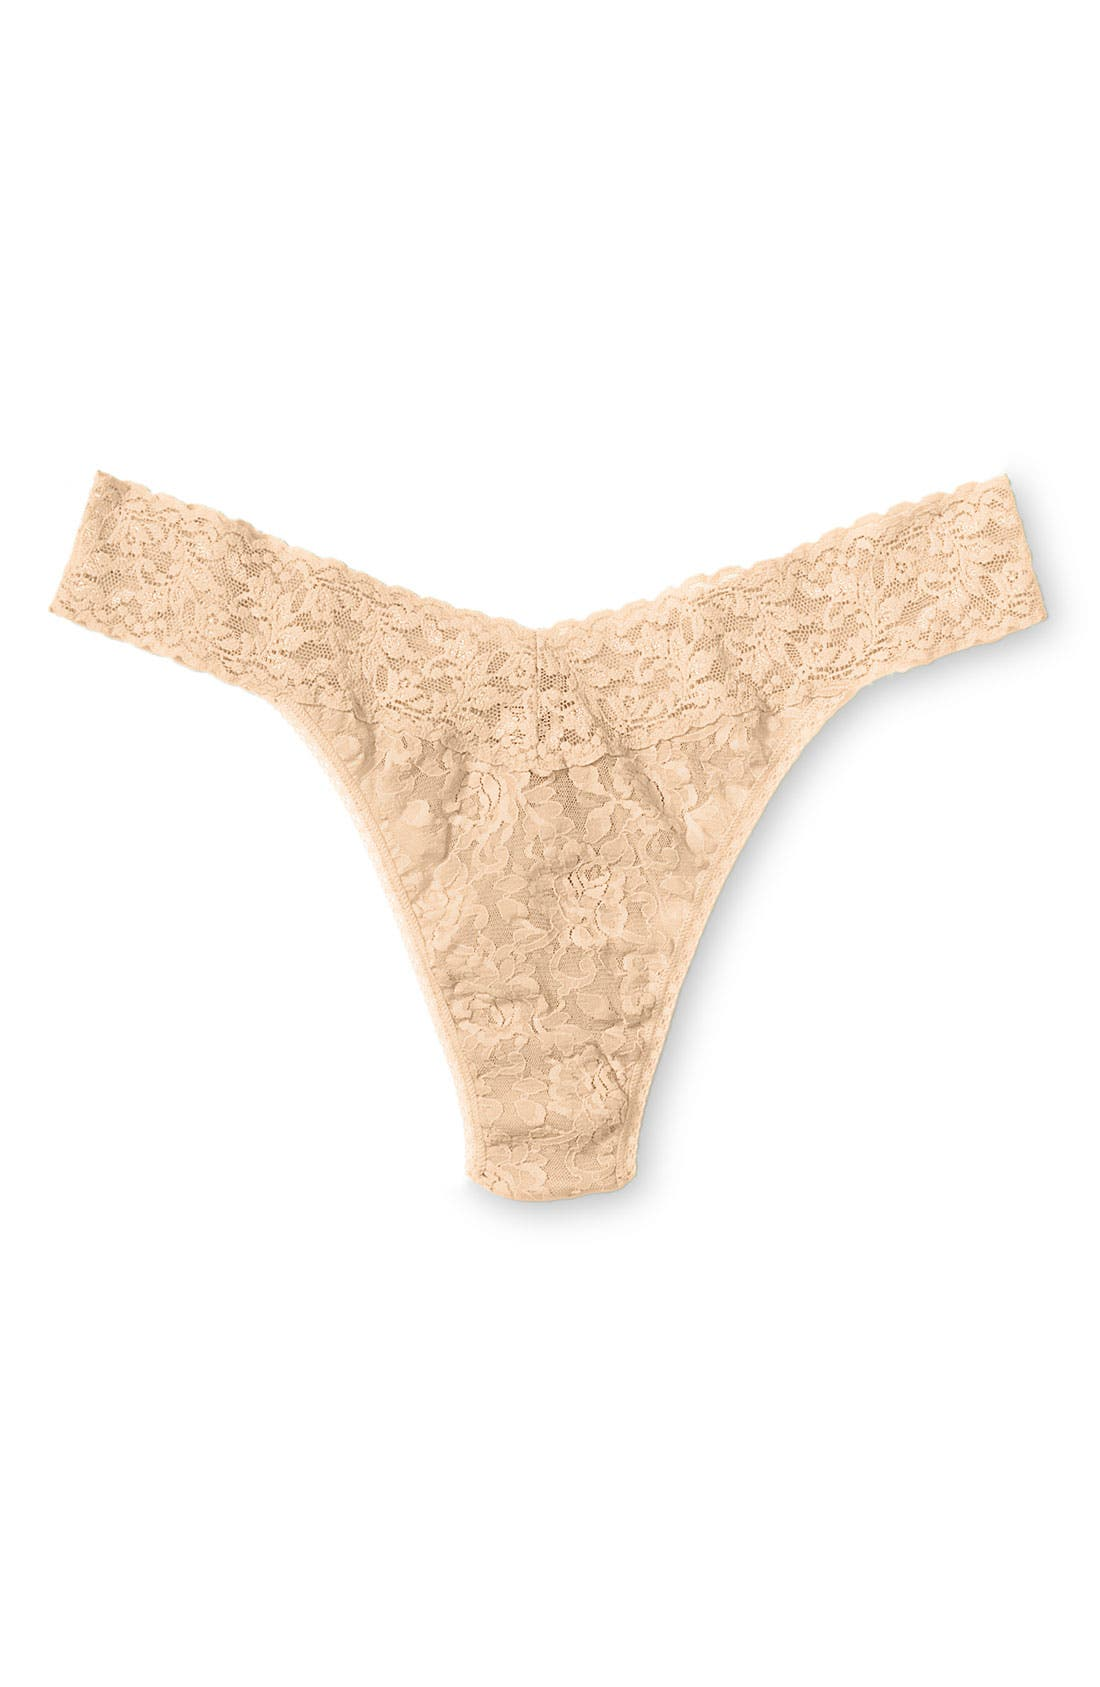 Alternate Image 1 Selected - Hanky Panky Original Rise Thong (Plus Size)